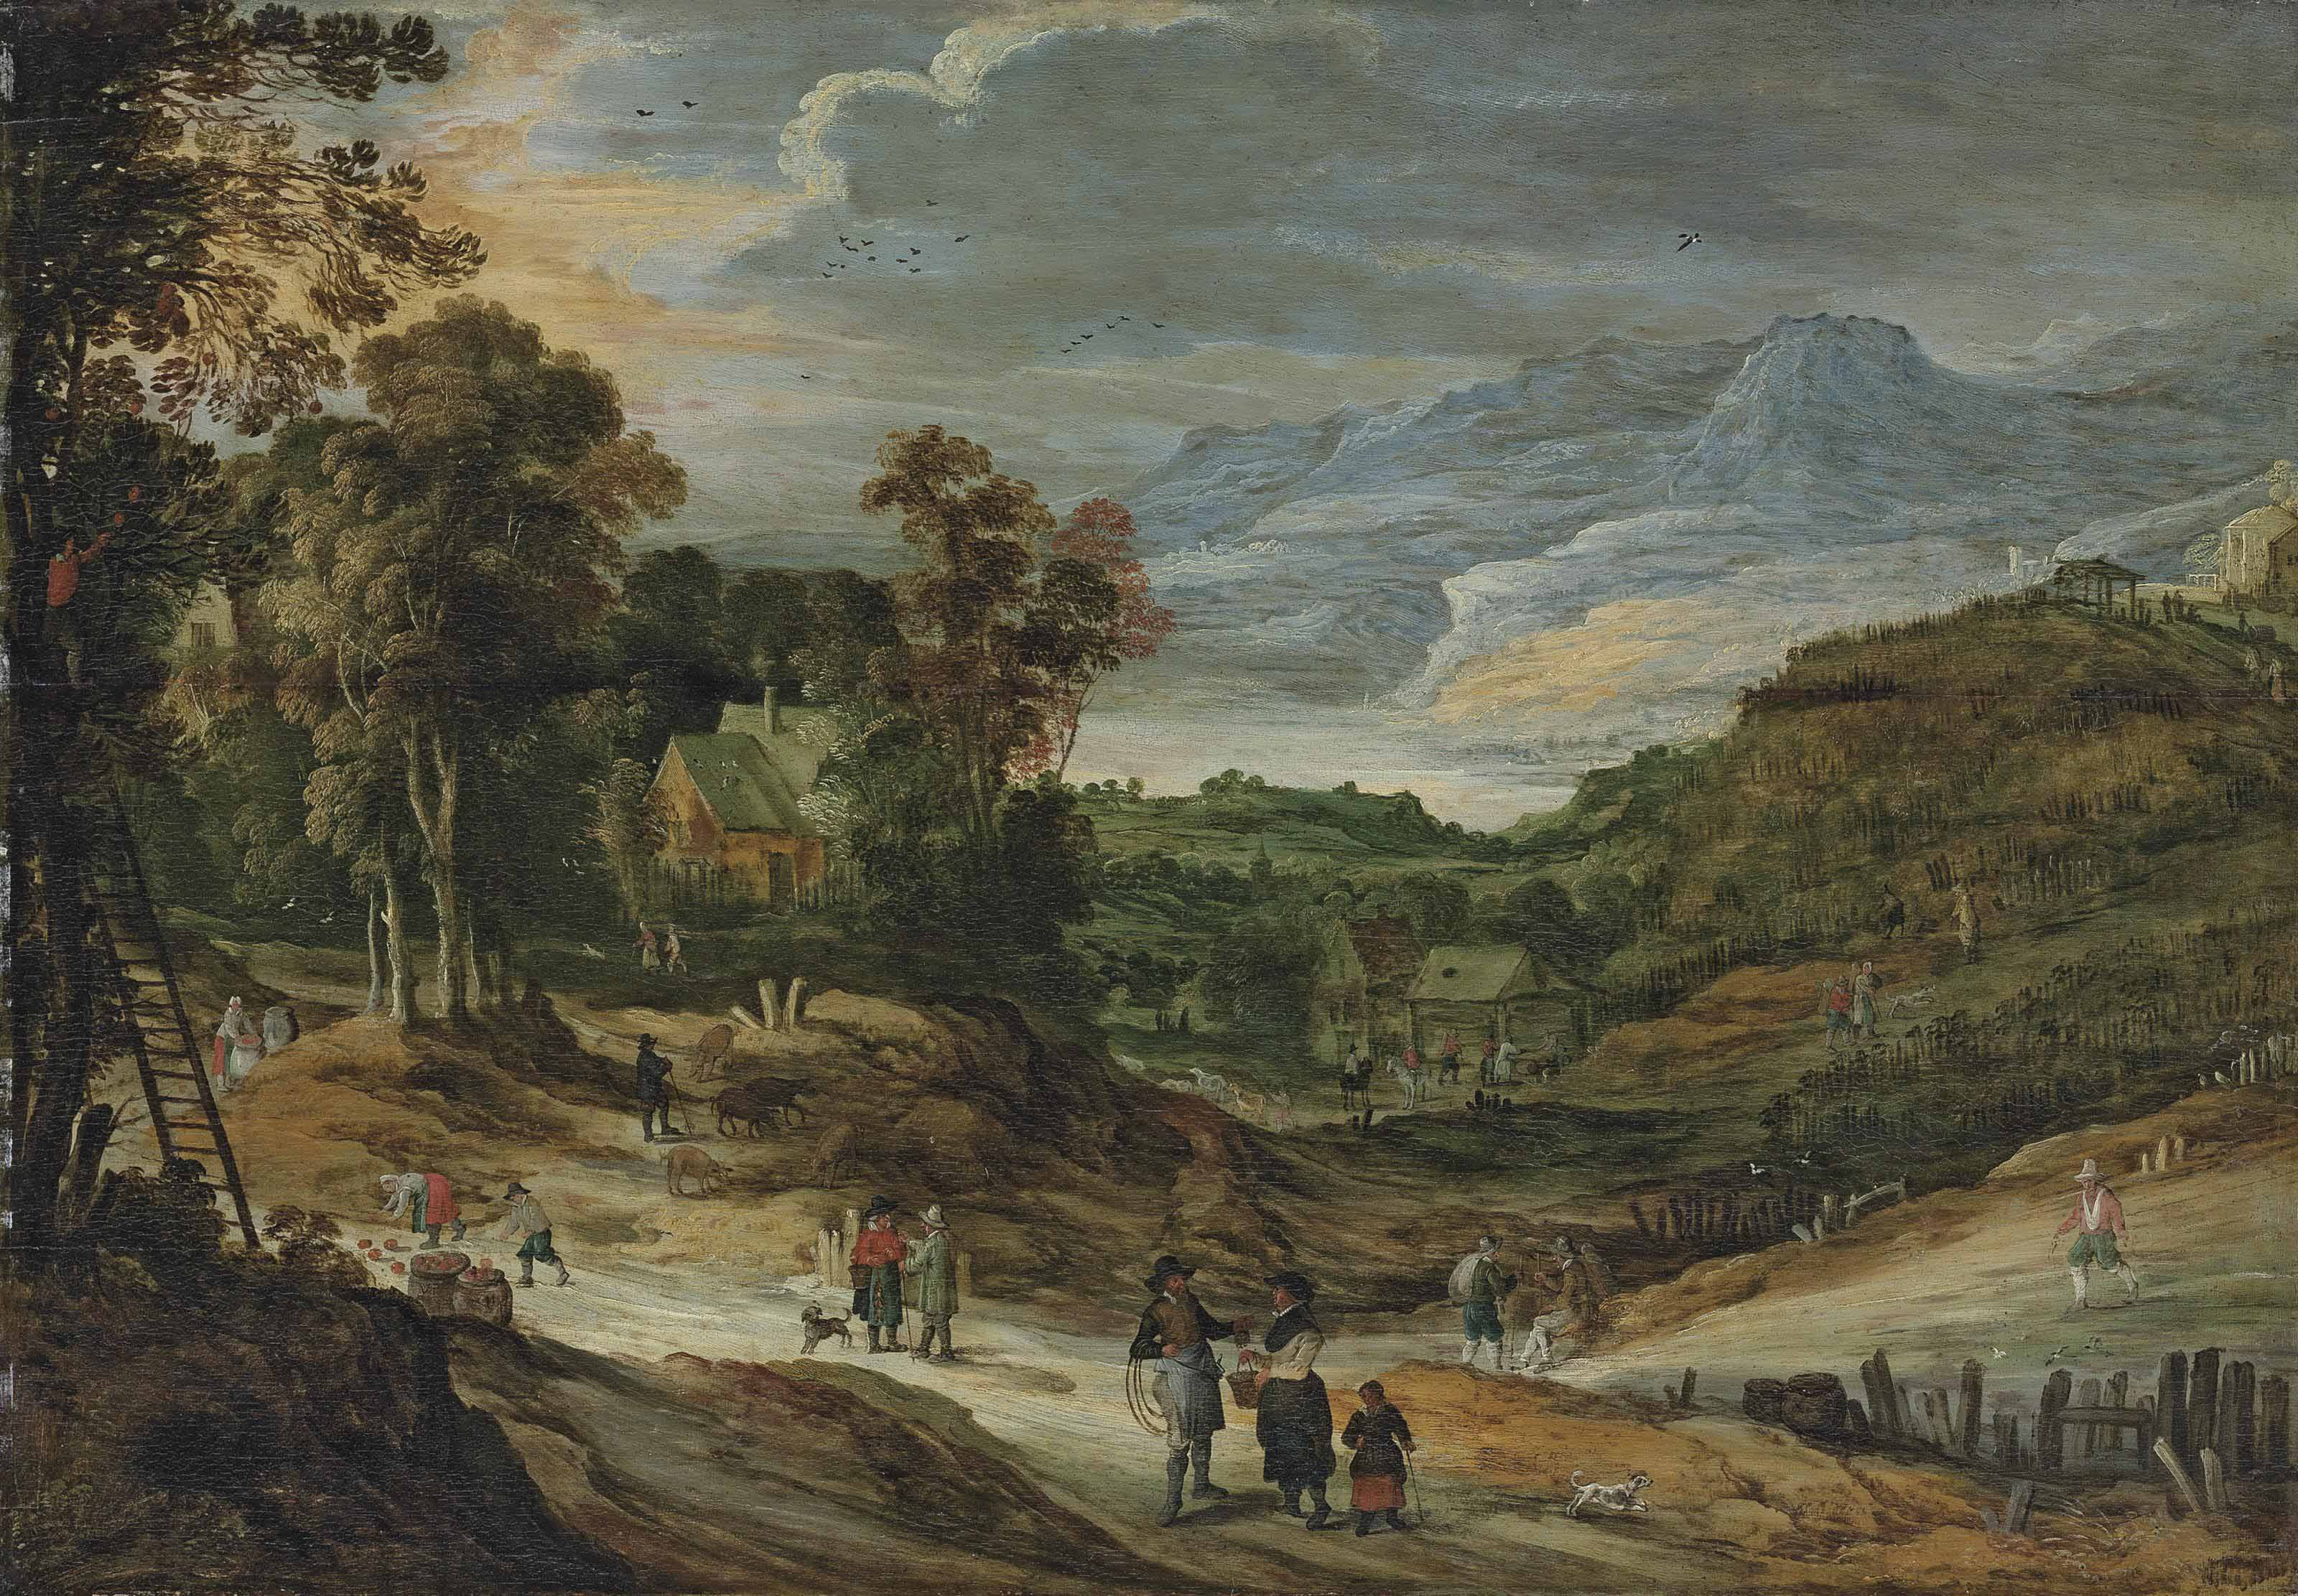 A wooded landscape with cottages, figures picking apples, mountains beyond